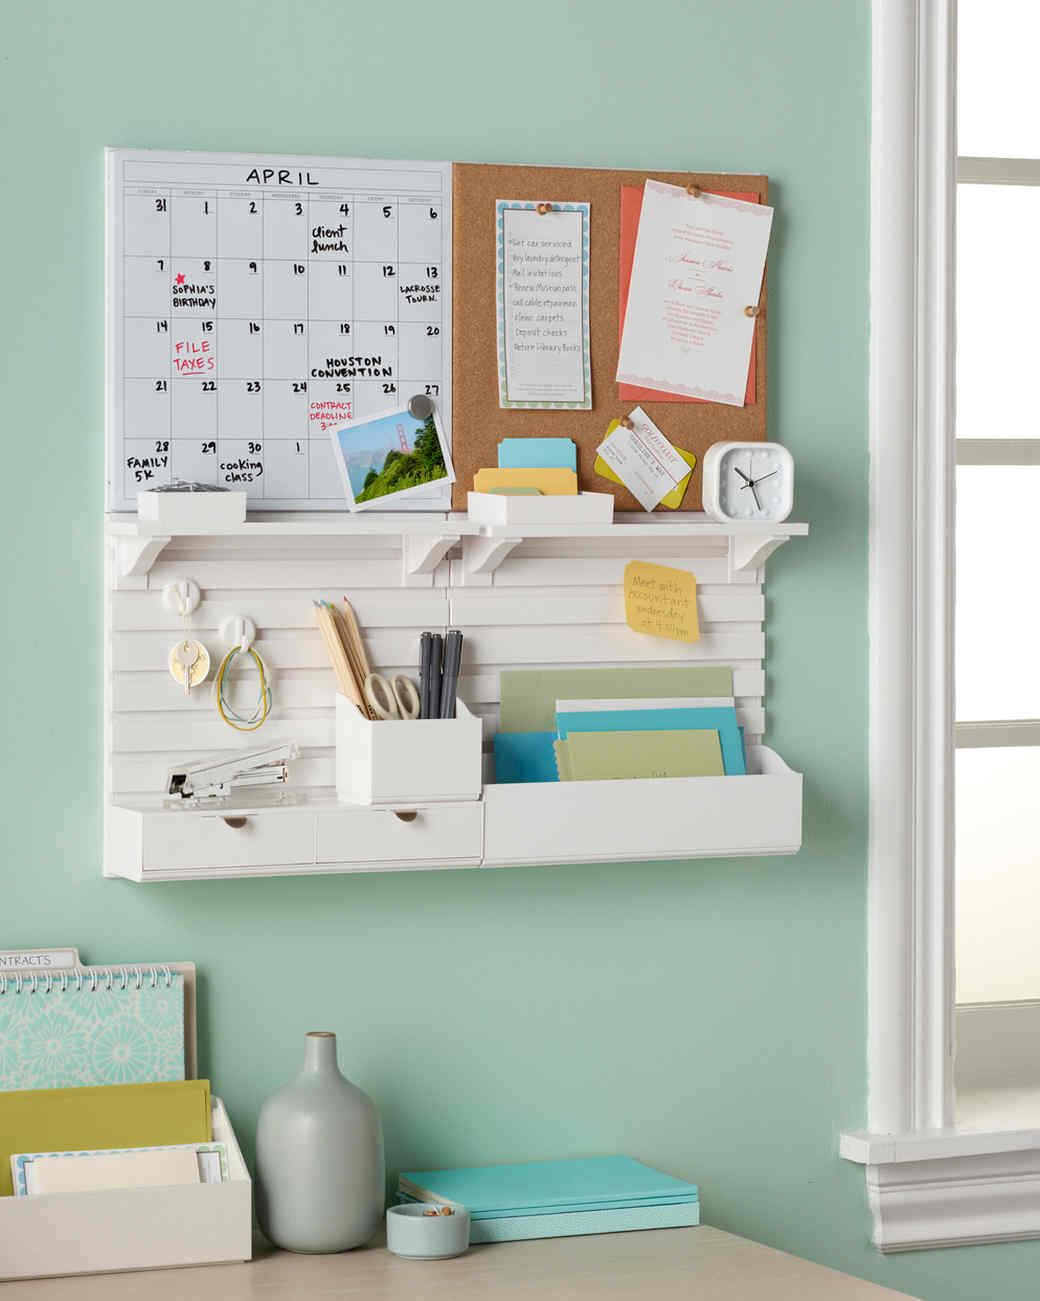 Swell Martha Stewart Home Office With Avery Exclusively At Staples Largest Home Design Picture Inspirations Pitcheantrous